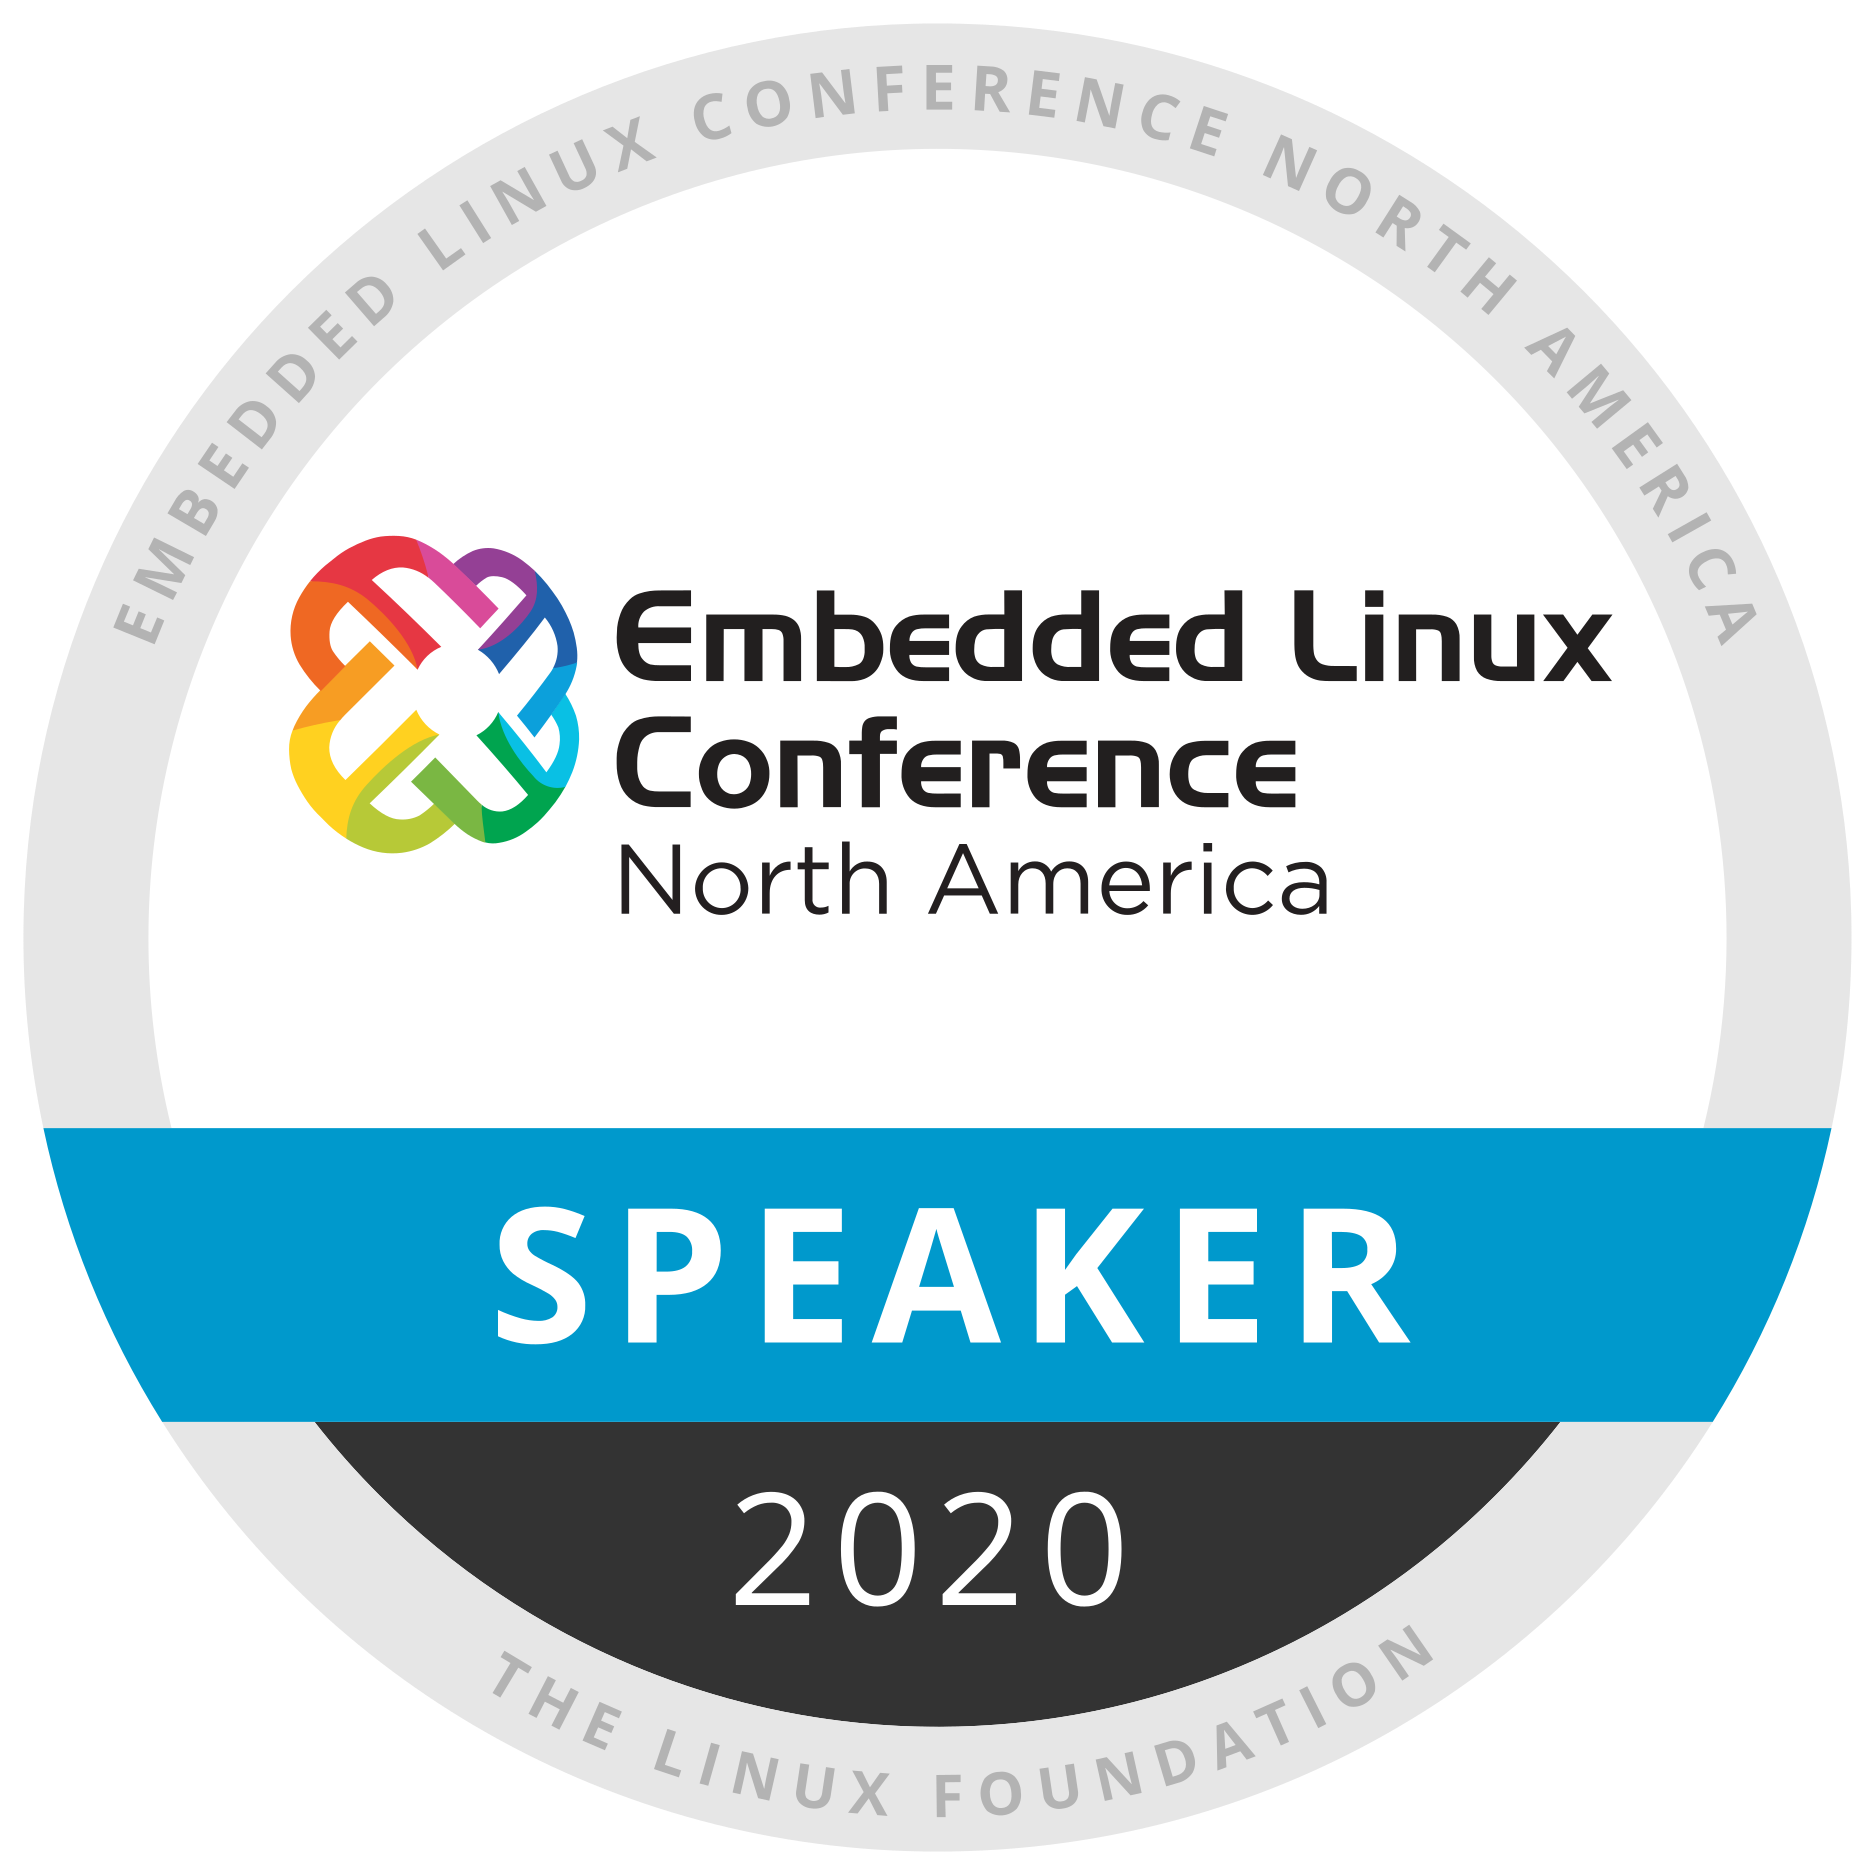 Speaker: Embedded Linux Conference North America 2020